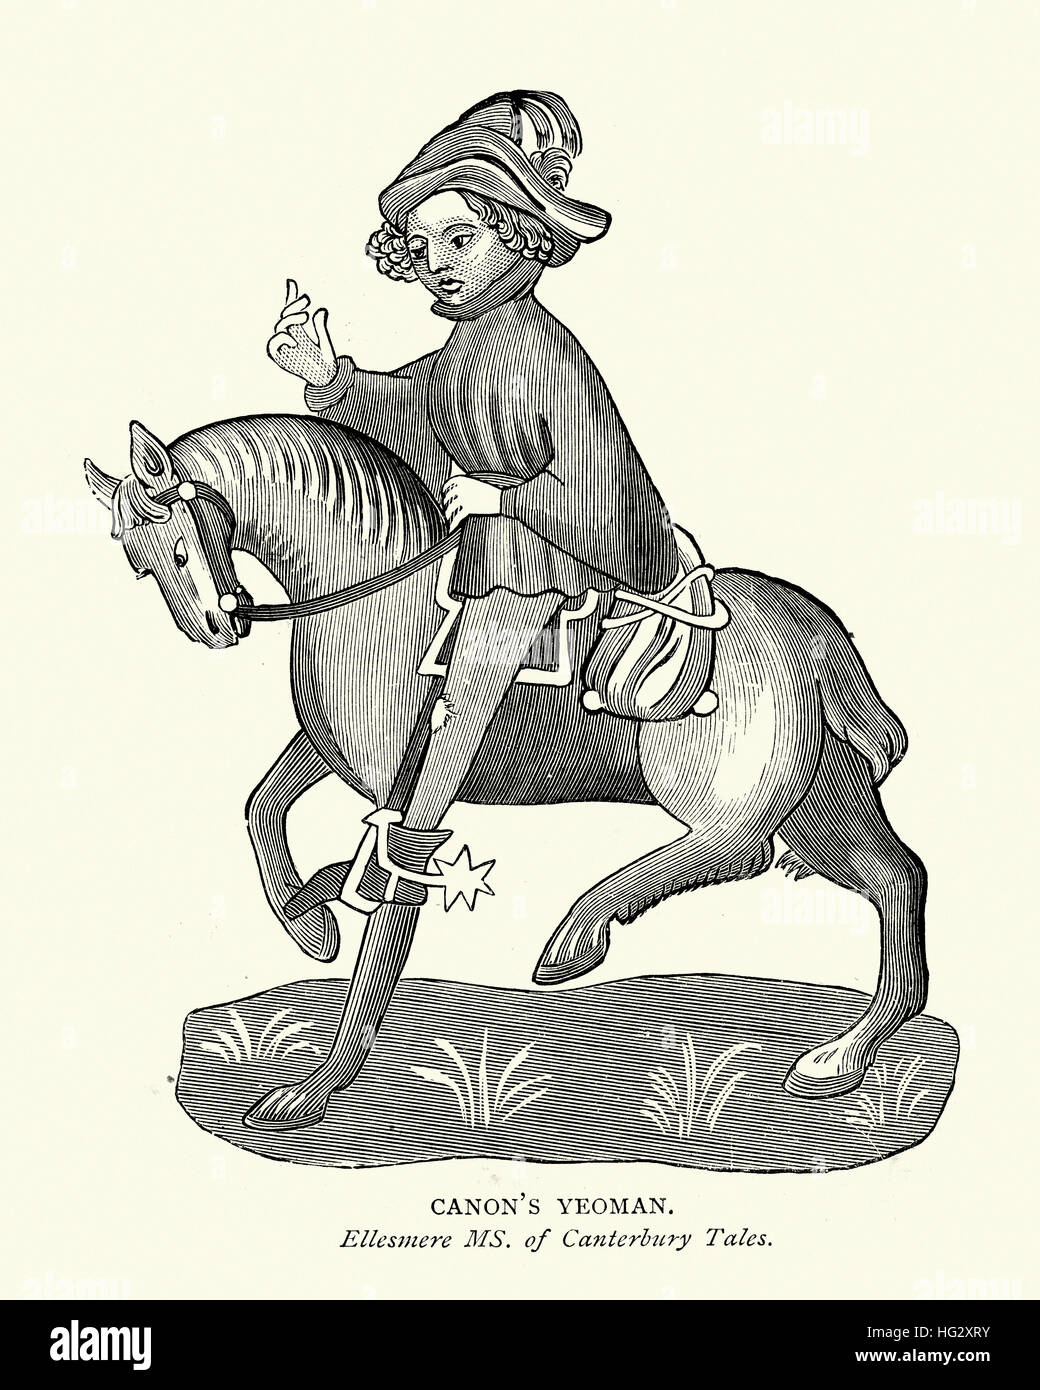 religion and sin in the canterbury tales by geoffrey chaucer Shayne white chaucer and the seven deadly sins in the catholic religion the seven deadly sins: in the canterbury tales by geoffrey chaucer the tales expose a.